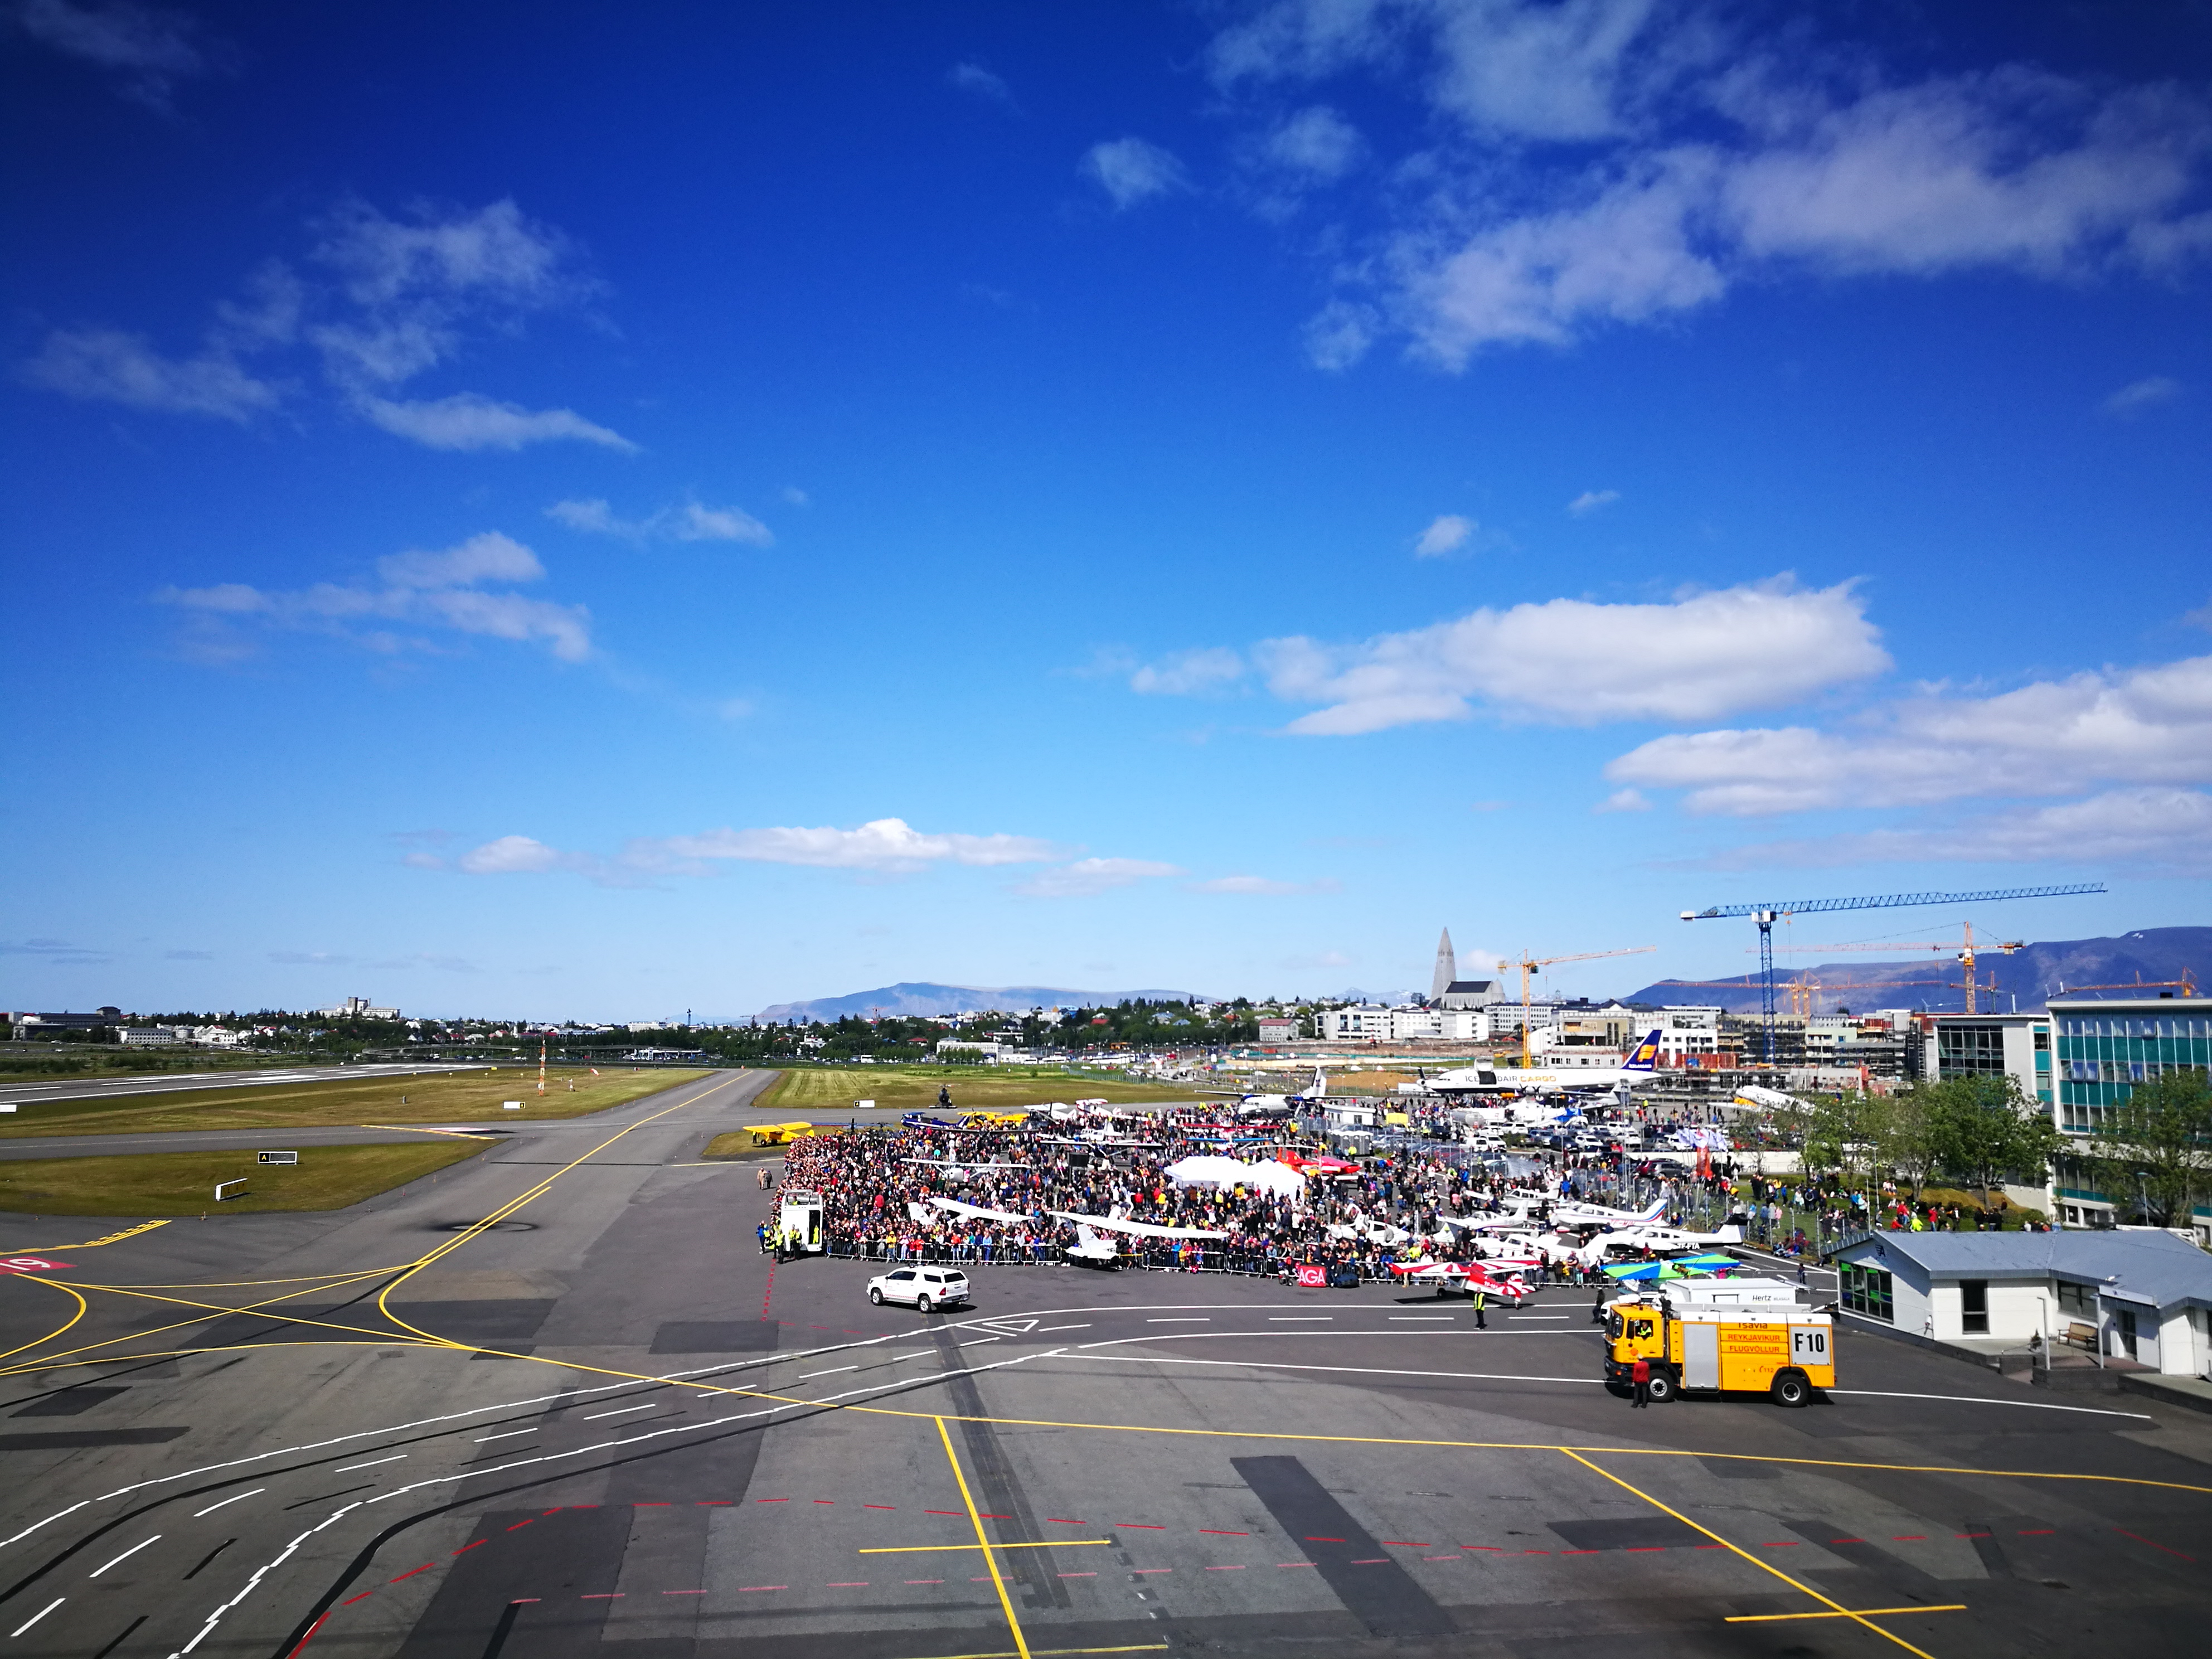 The general view on ground exhibition on Reykjavik Airshow 2019 // Source: Flugblogg